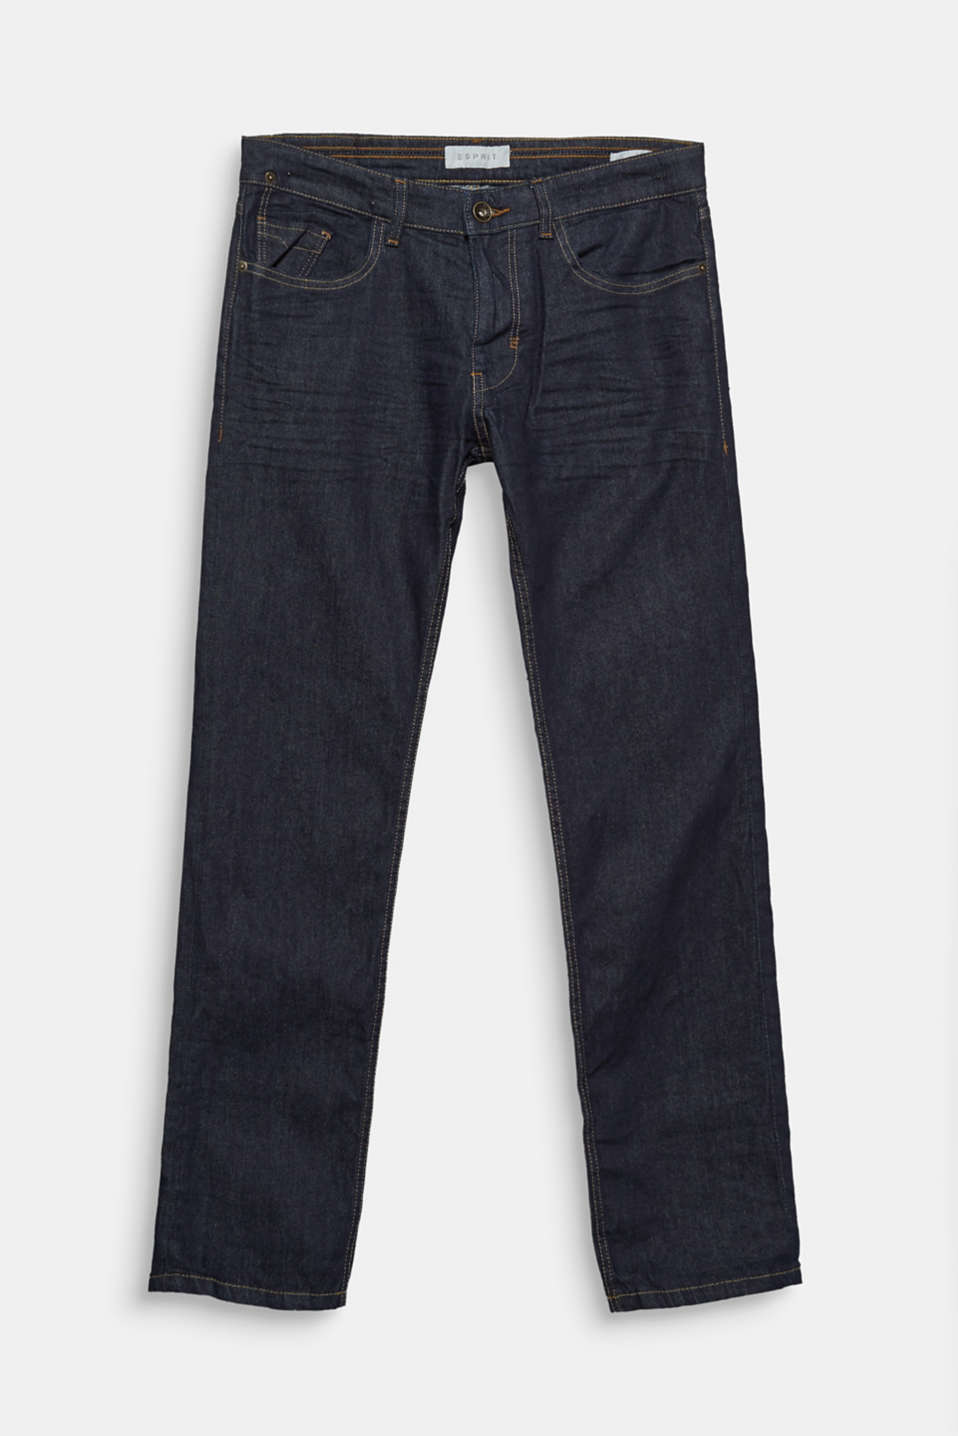 We love denim! These slim-fitting, five-pocket jeans feature a casual vintage garment wash.